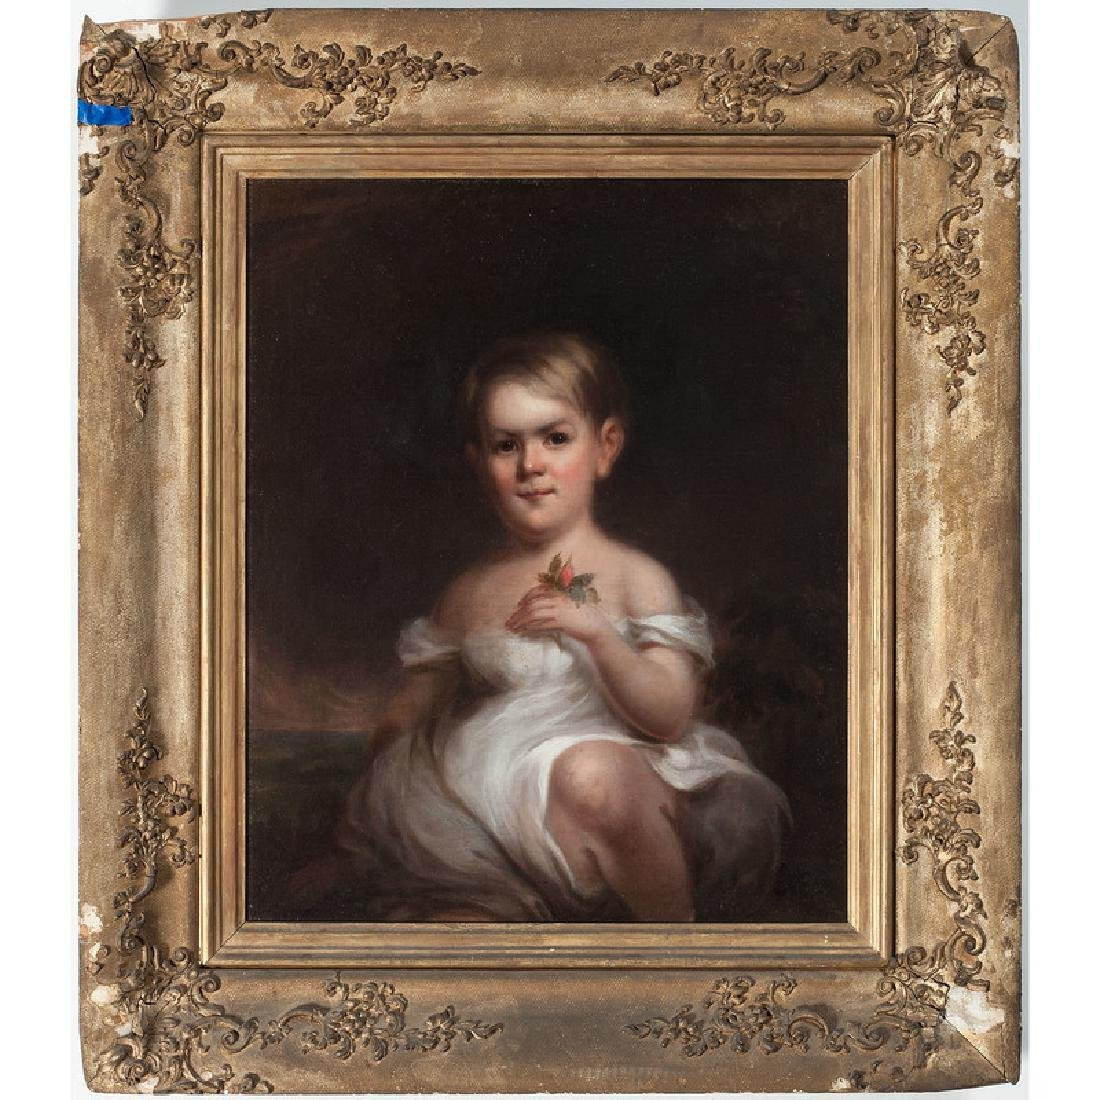 Portrait of a Child, Manner of Thomas Sully